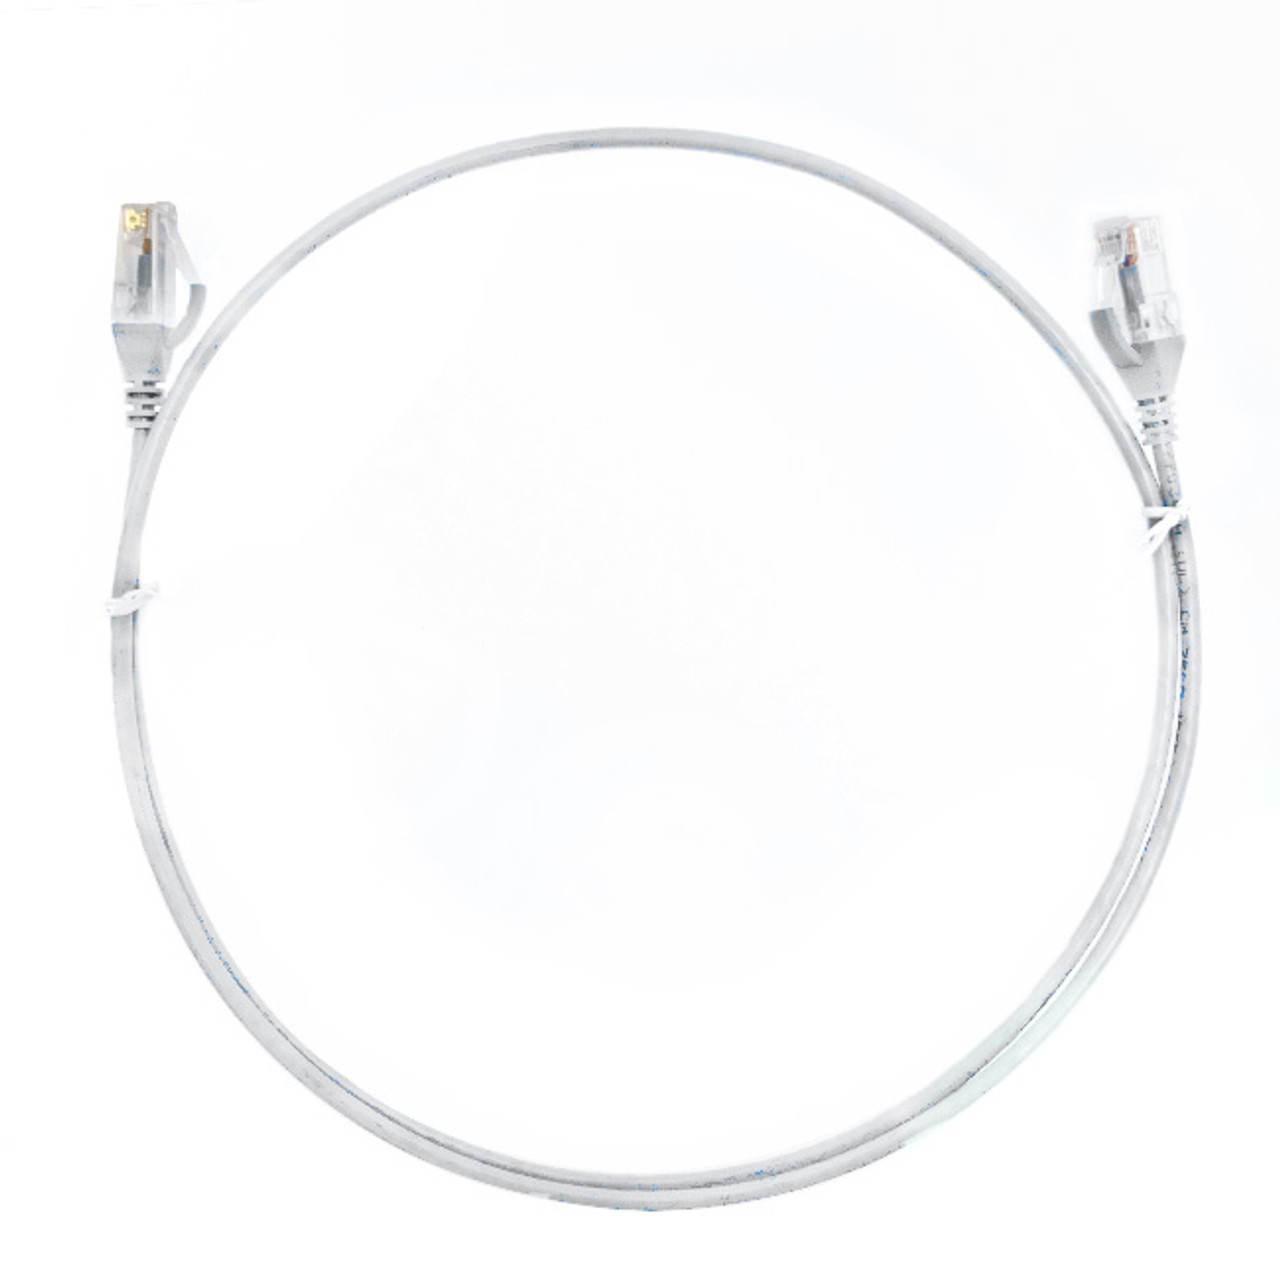 Image for 0.5m Cat 6 Ultra Thin LSZH Ethernet Network Cables: White CX Computer Superstore